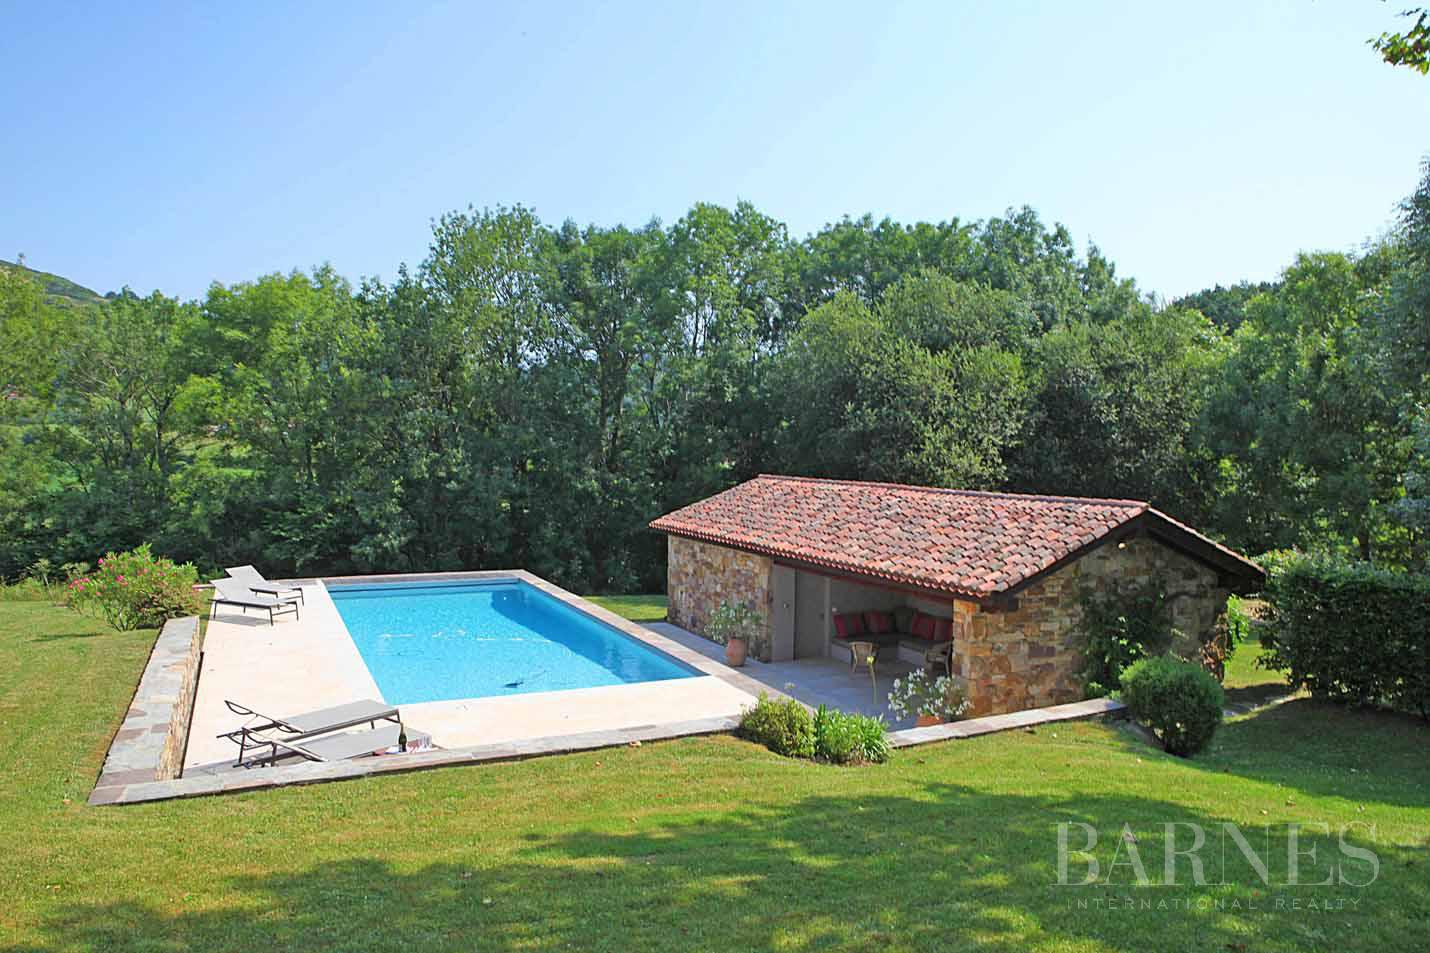 SARE, 20 MINUTES FROM SAINT JEAN DE LUZ, BASQUE STYLE FARMHOUSE WITH HEATED POOL, PANORAMIC MOUNTAIN VIEW picture 4